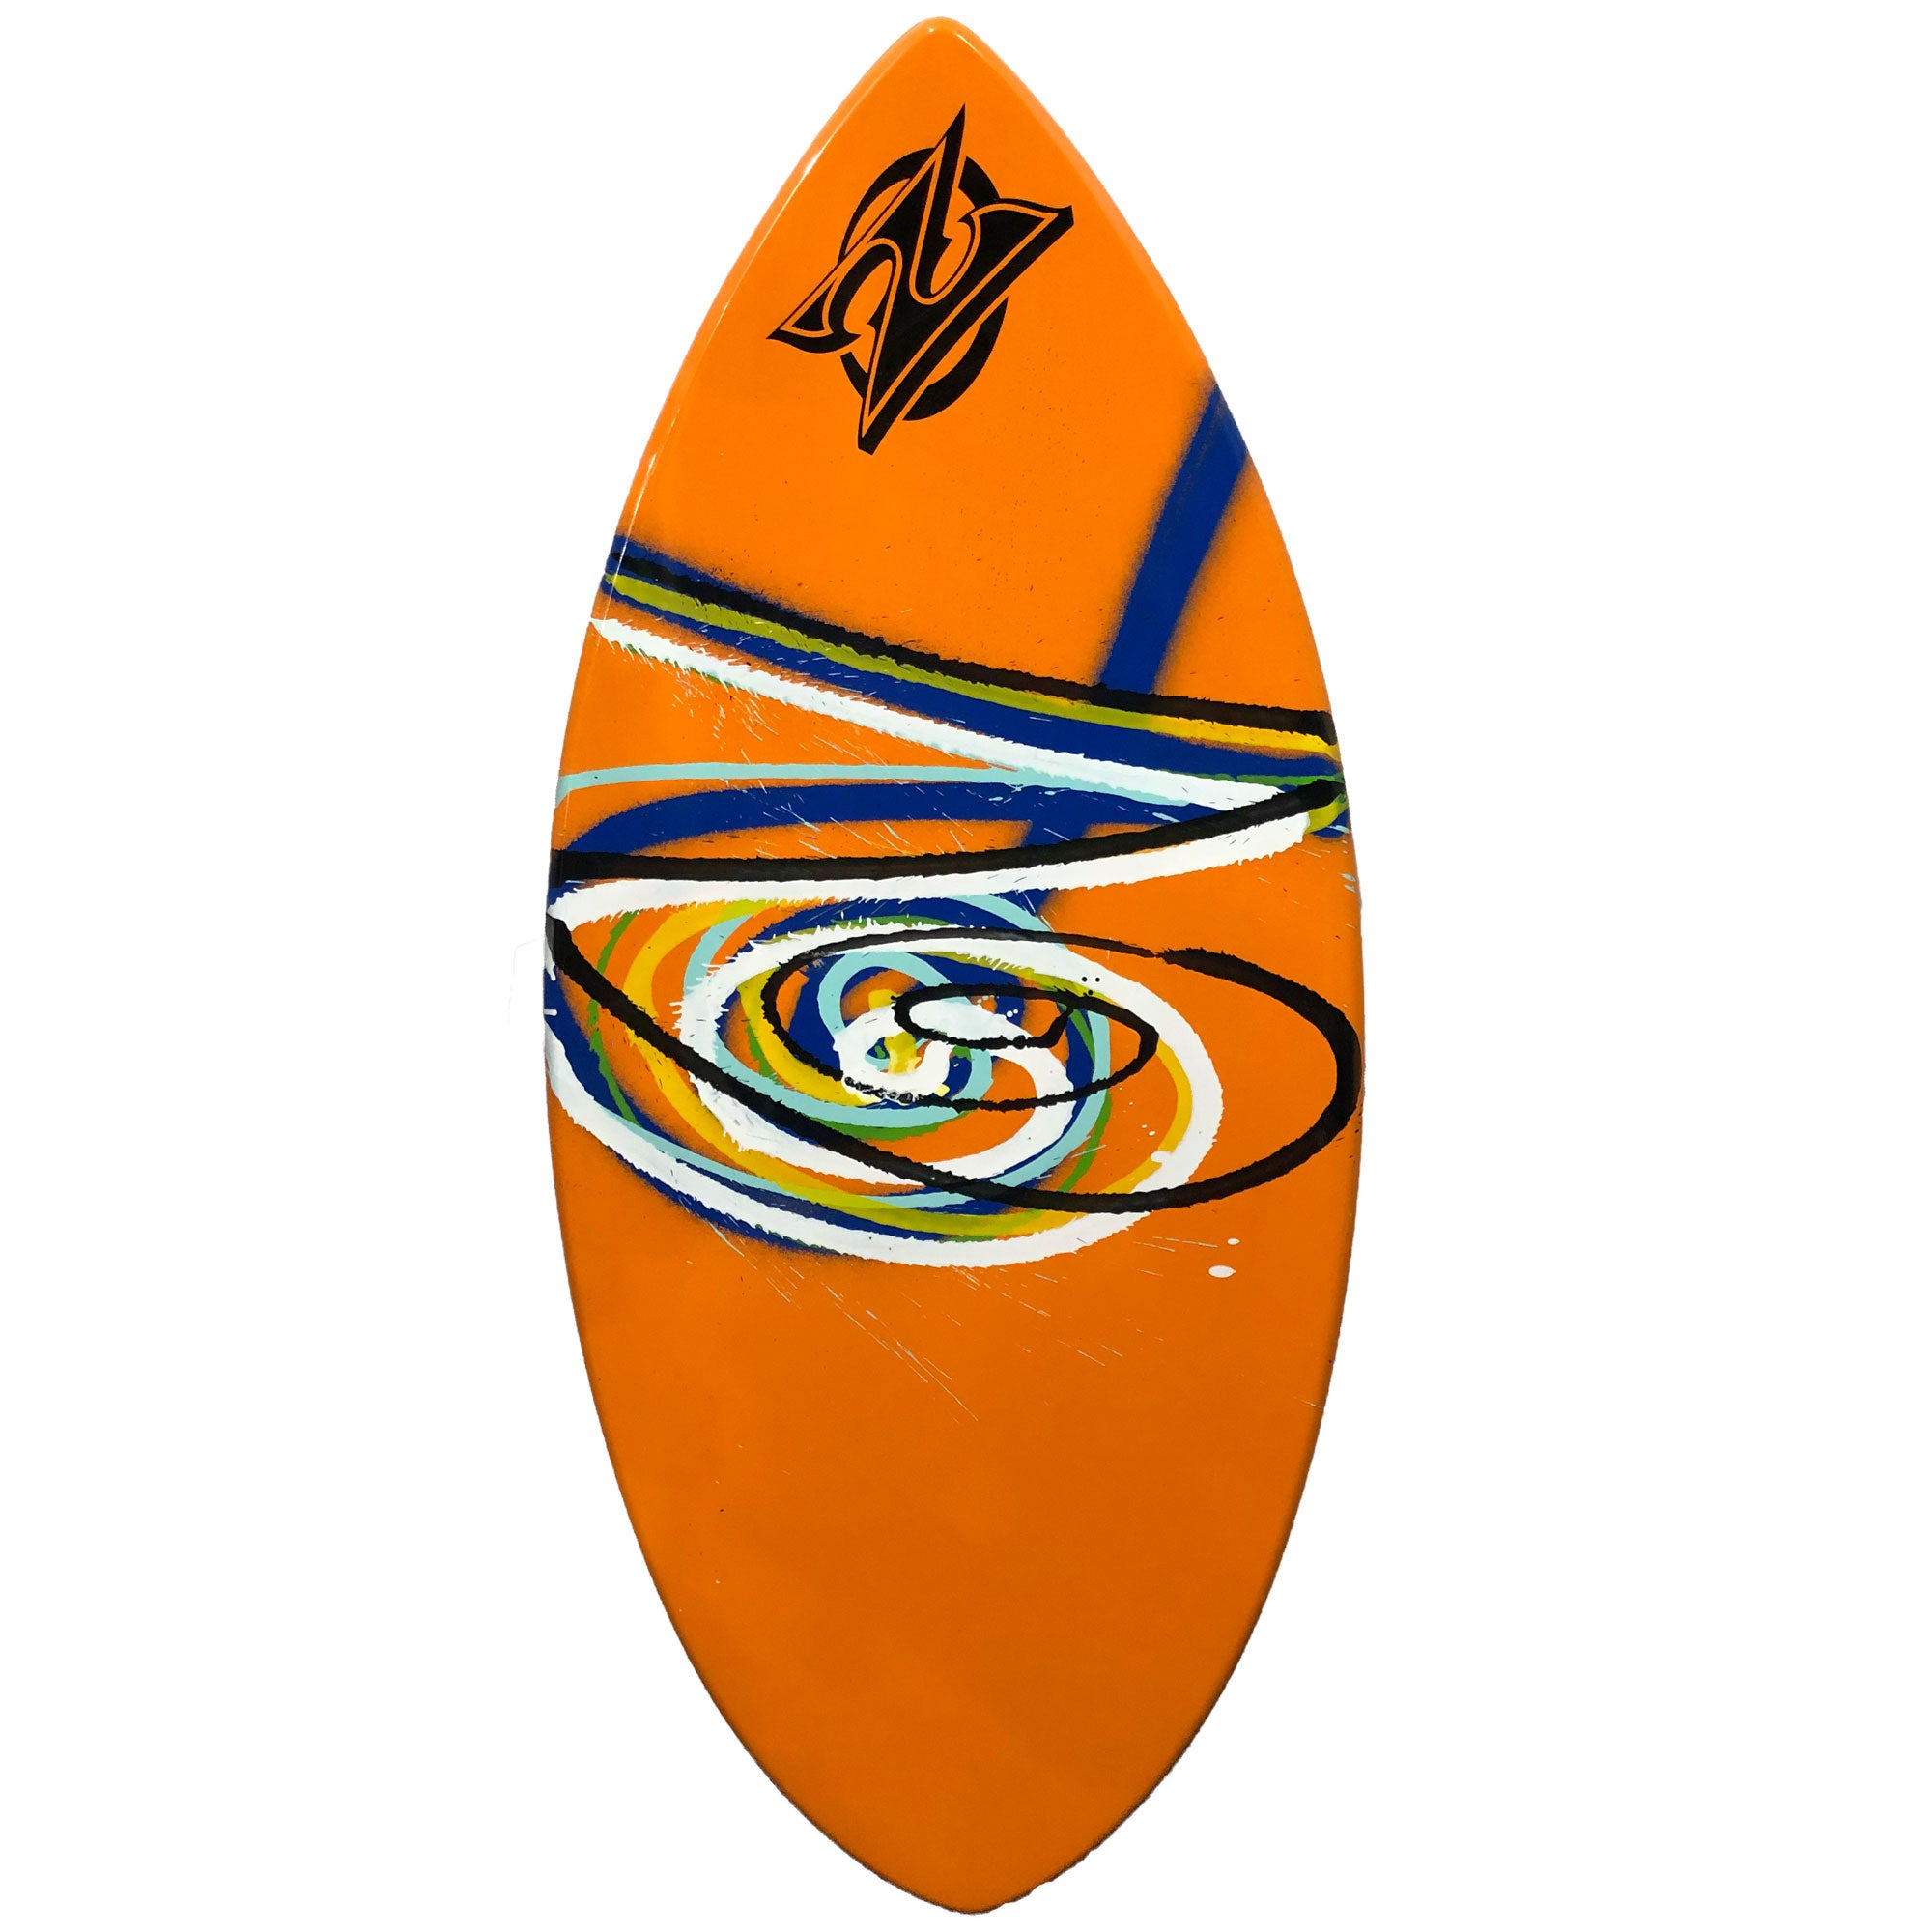 "Zap Wedge 45"" Skimboard - Orange w/ Multi Swirl"